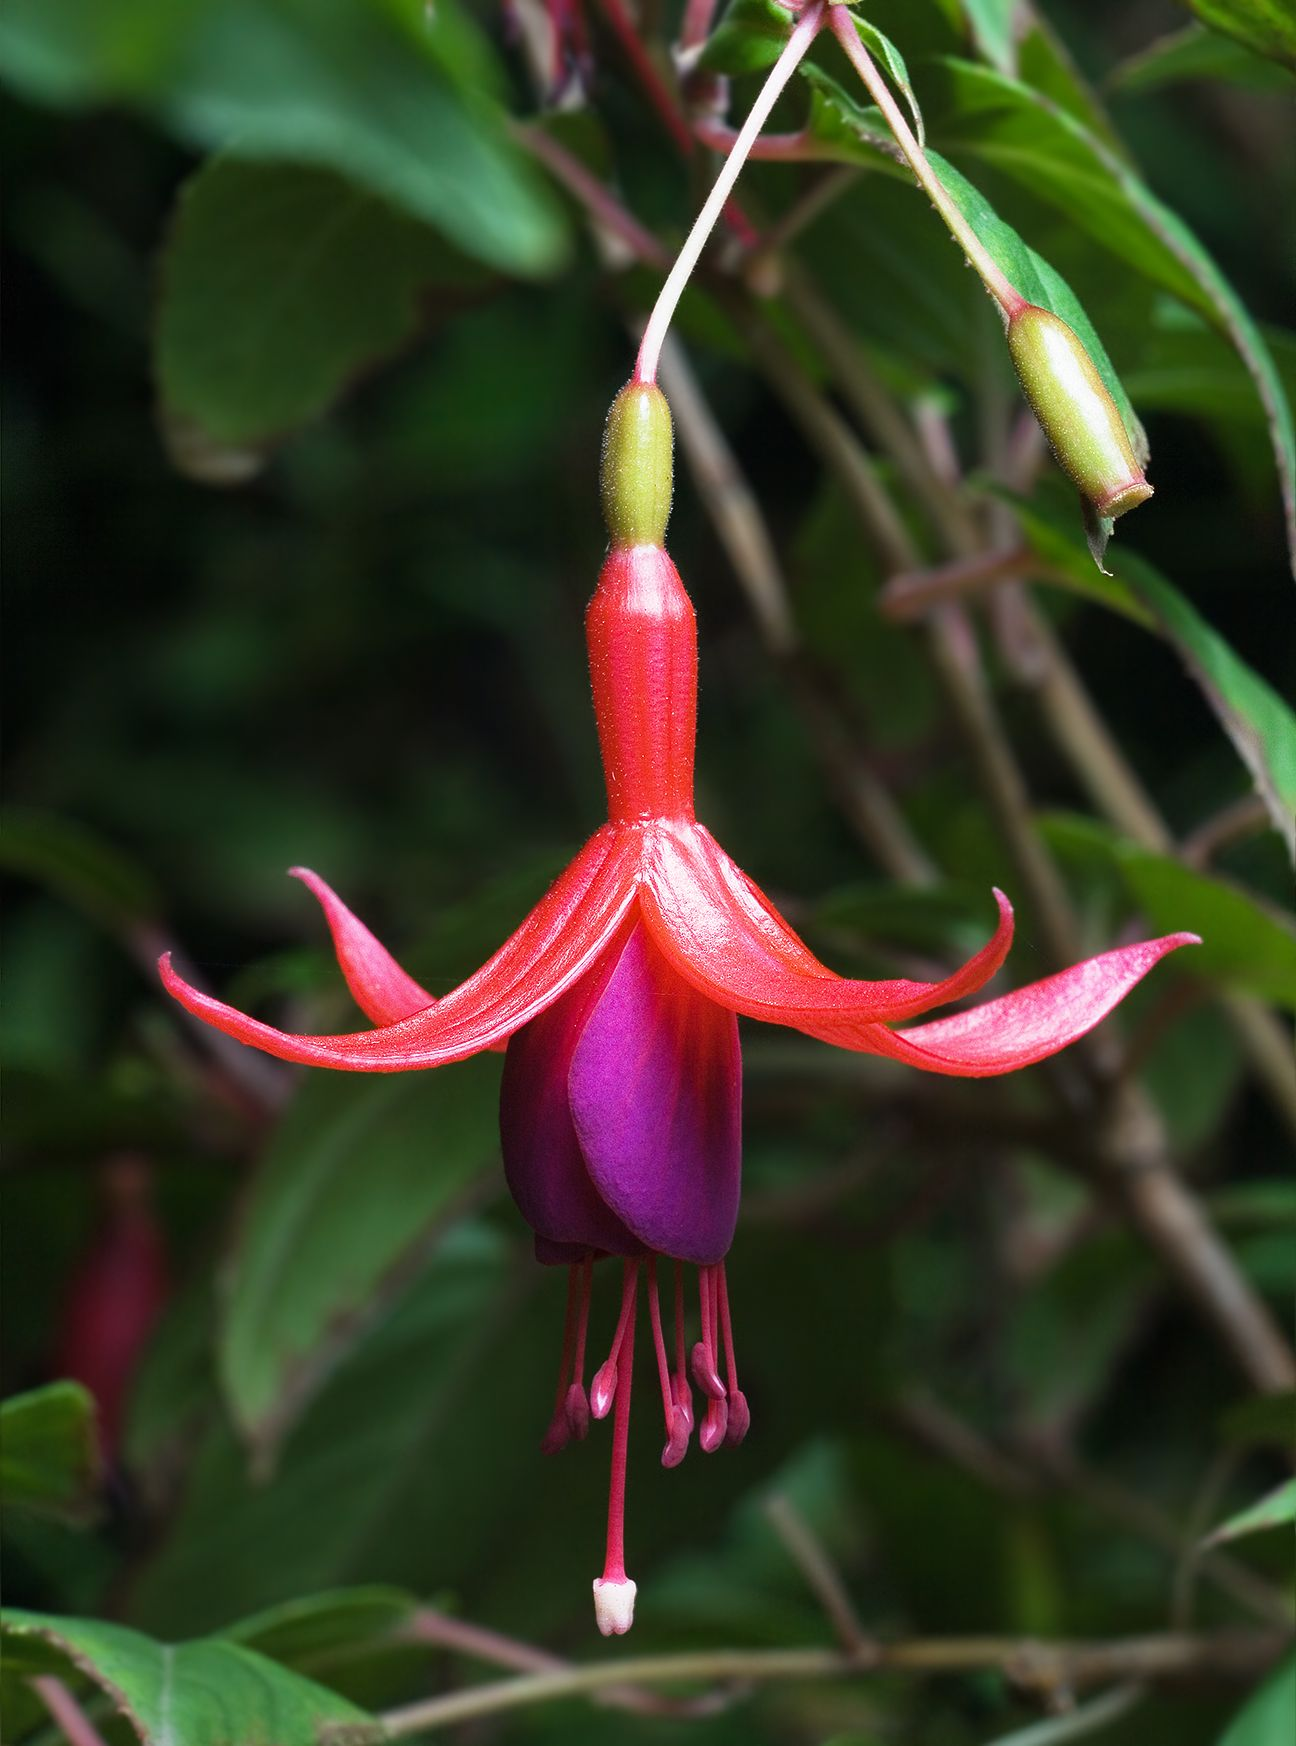 Fuchsia Magellanica Edible Berries Pick When Soft Fuchsia Flower Hummingbird Plants Flower Anatomy